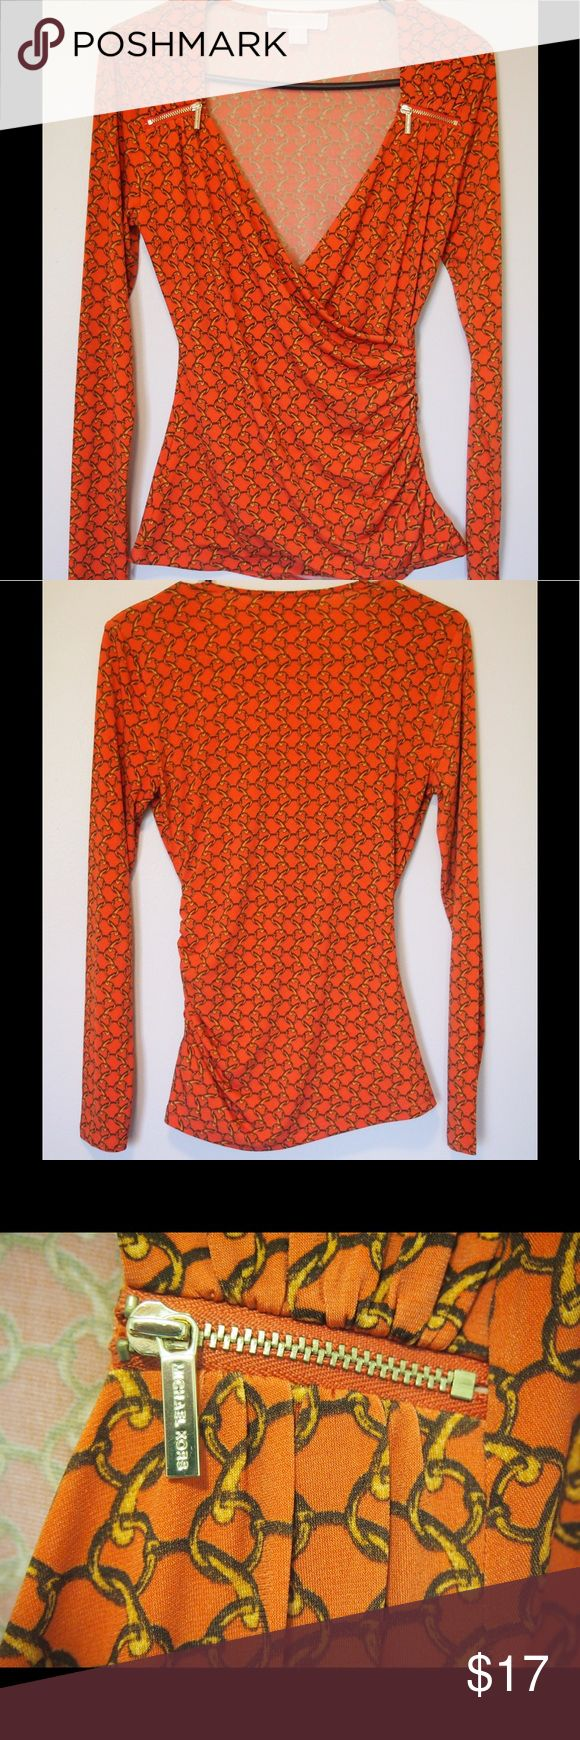 Michael Michael Kors Orange Woman's Top Size XS This is a Michael Michael Kors Orange Women's top size XS. The top is 95% polyester and 5% Spandex. The top has no flaws nor defects. In perfect condition. Any questions please do not be shy and ask before purchasing. Thanks MICHAEL Michael Kors Tops Blouses